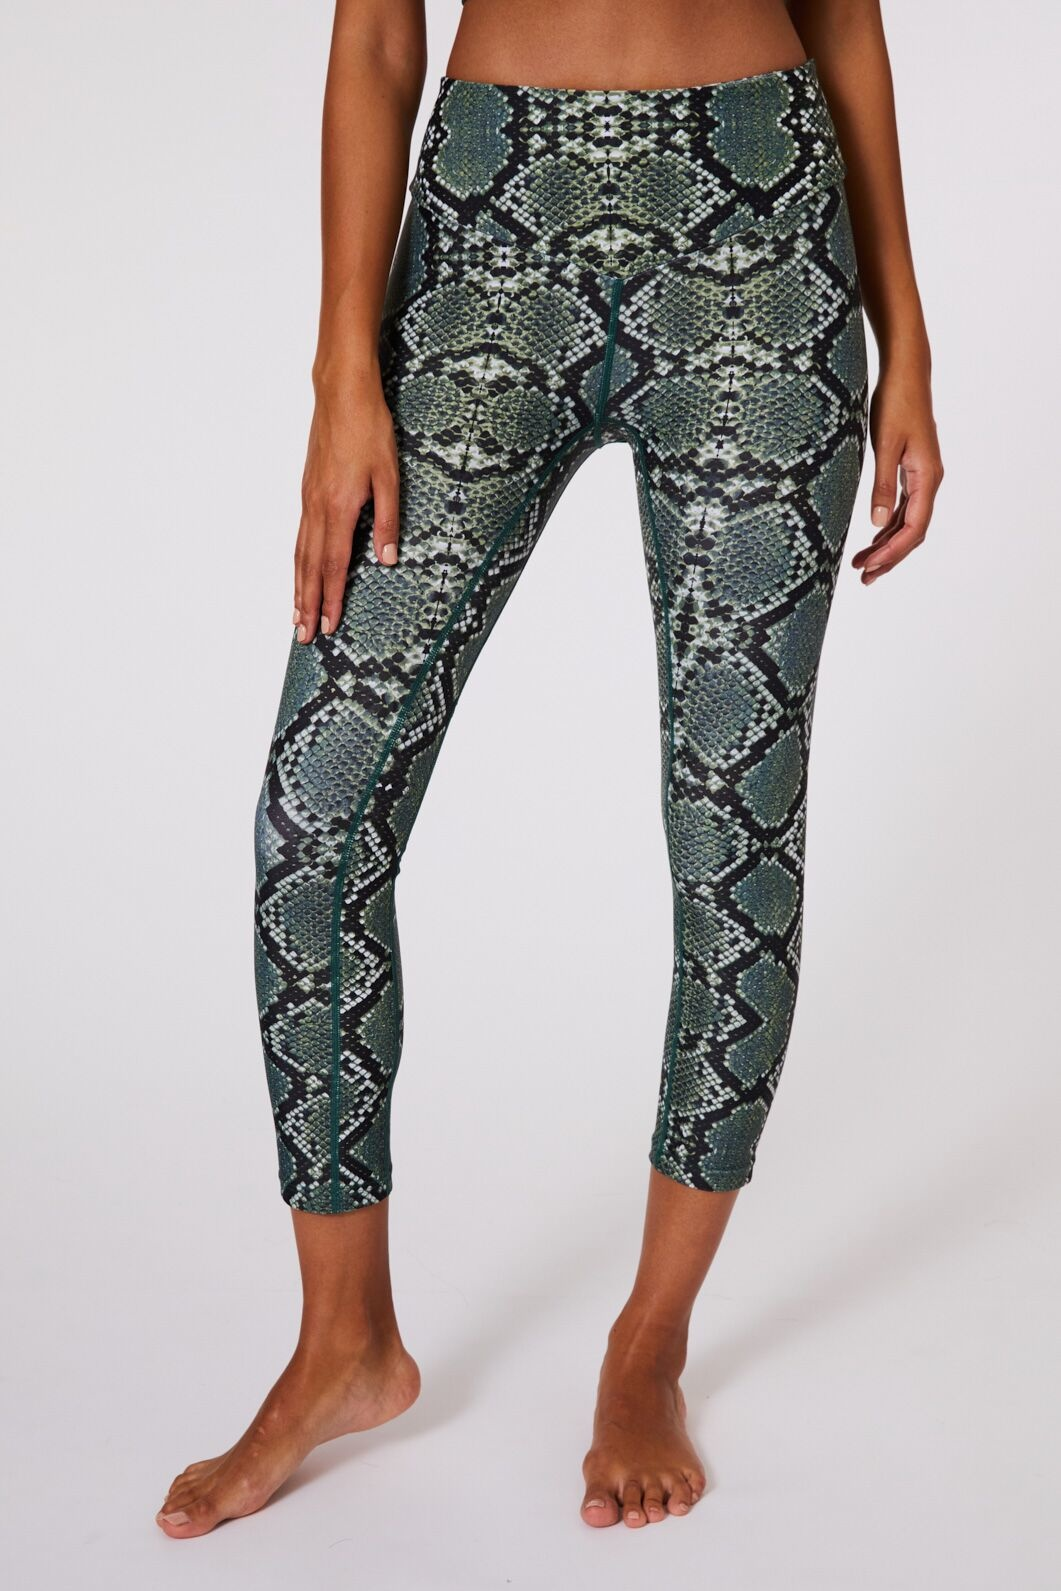 L'urv Second Nature 7/8 Legging